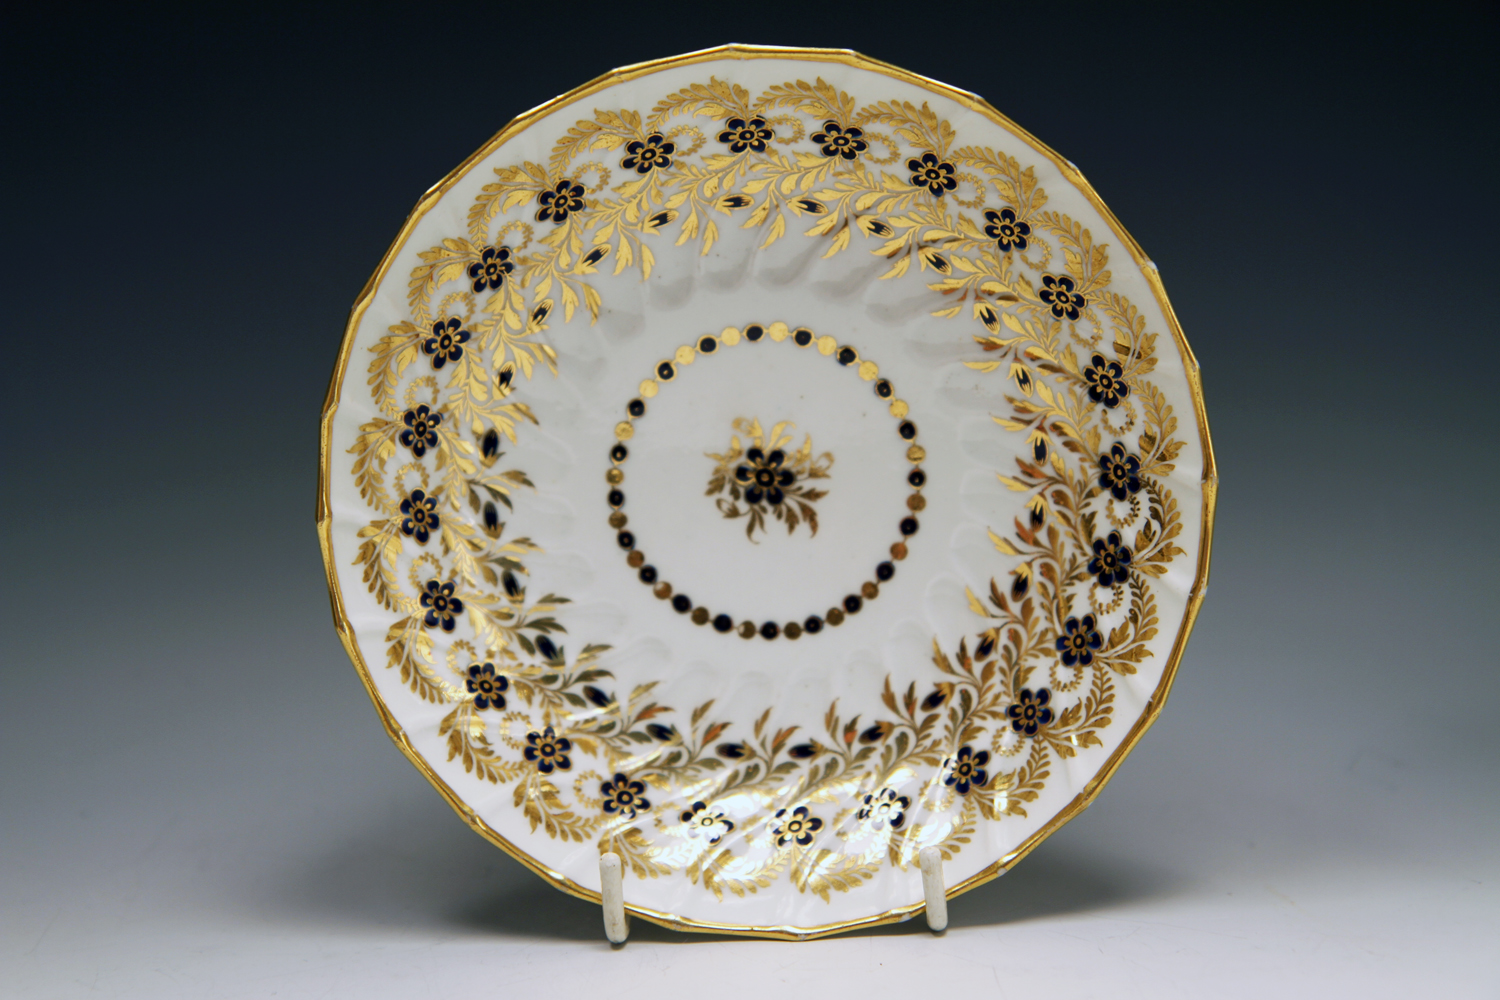 1034 - Worcester spirally fluted teacup and saucer c 1785